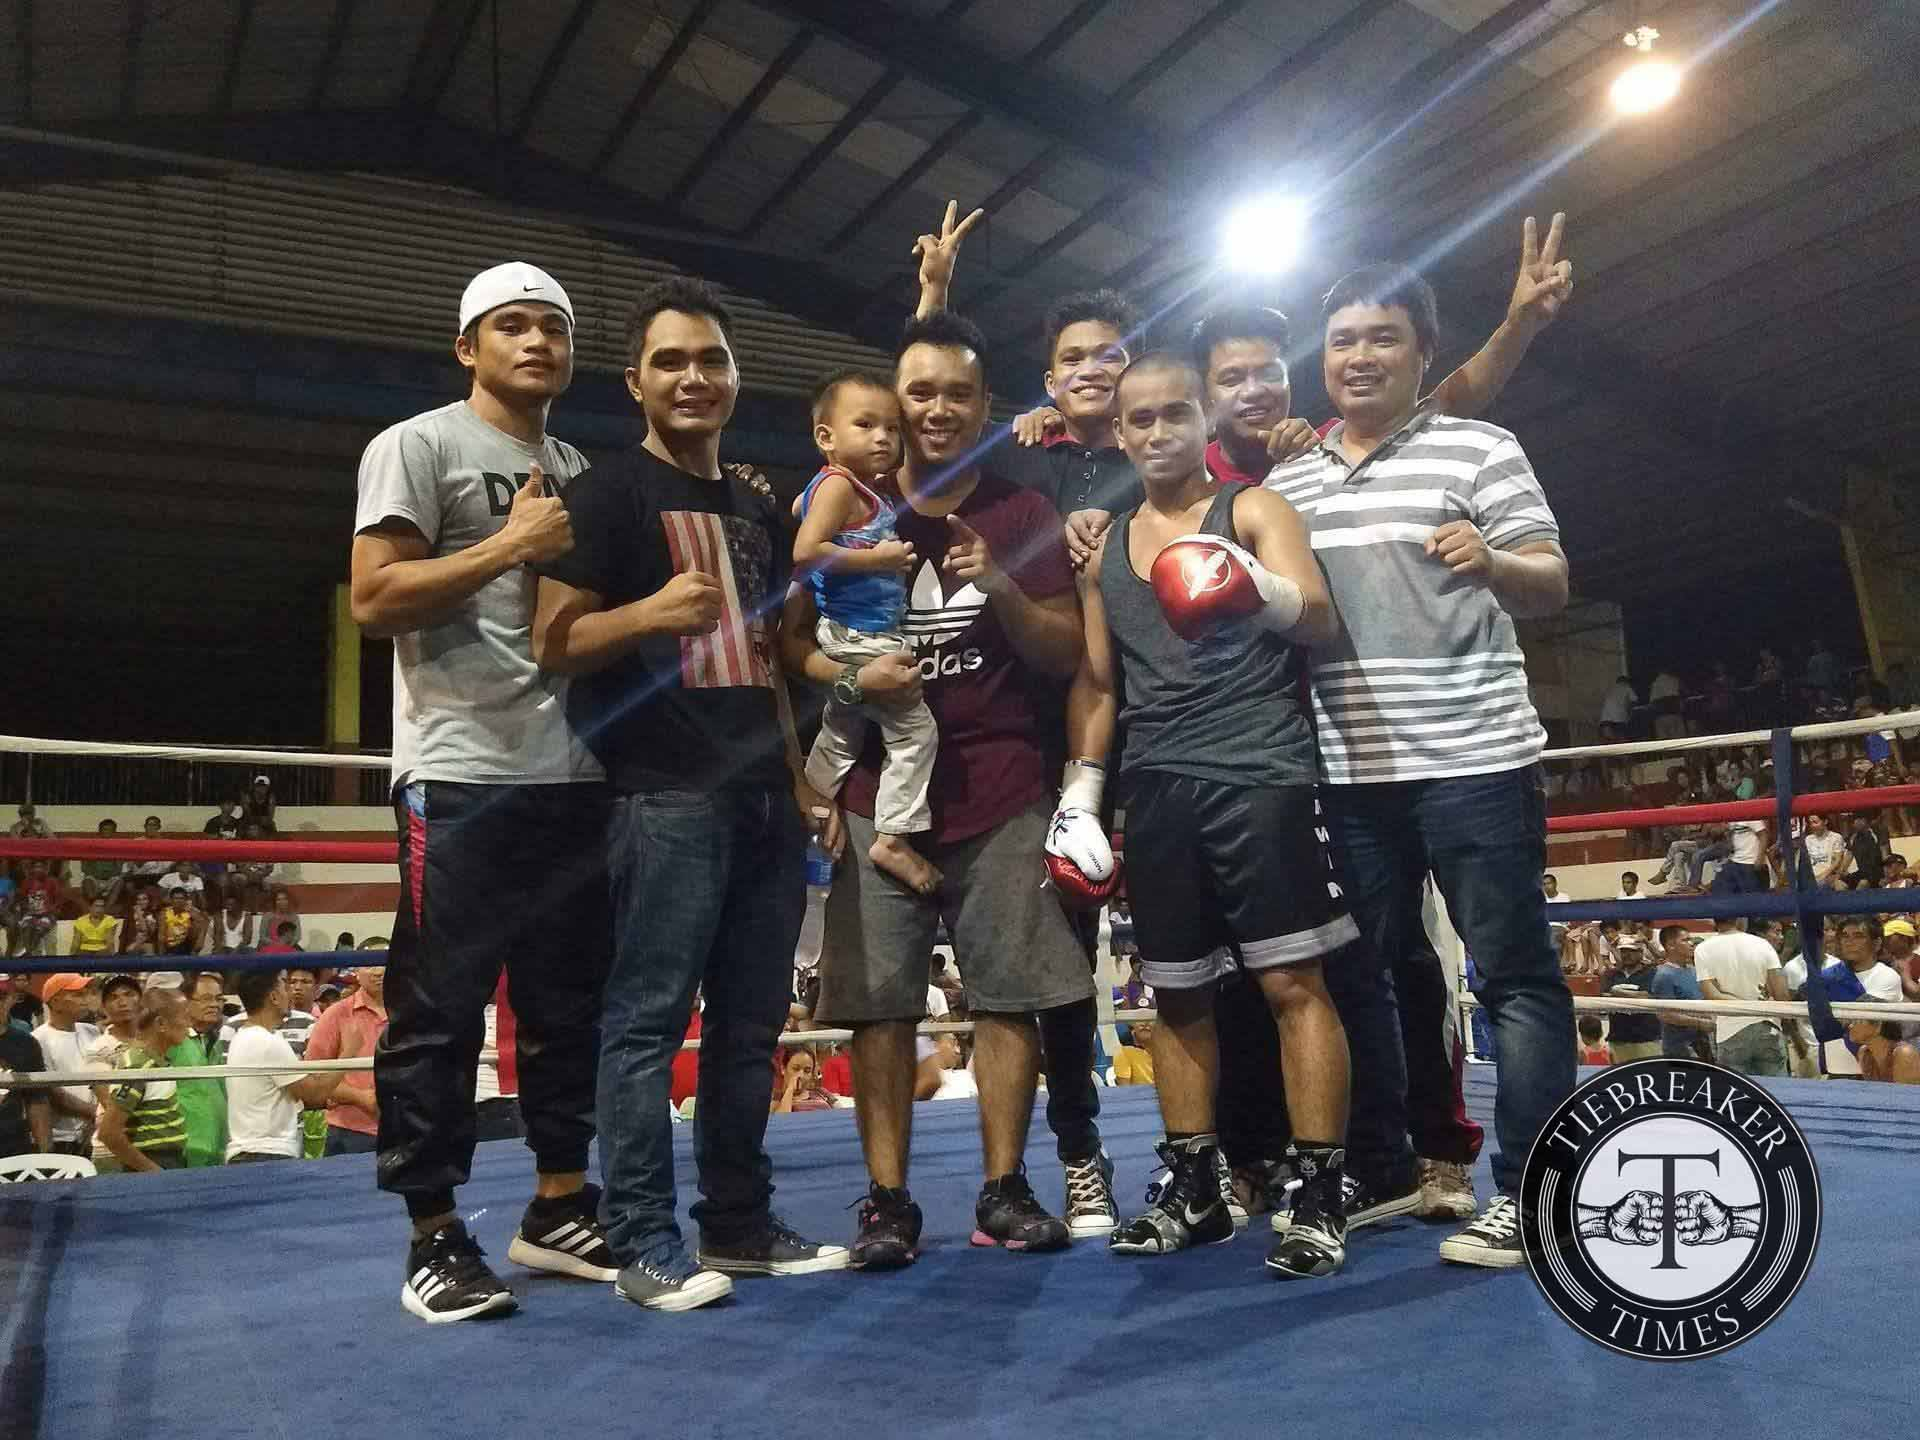 Philippine Sports News - Tiebreaker Times Following sixth win, former Olympian Barriga inches closer to world title shot Boxing News  Mark Anthony Barriga Joven Jimenez